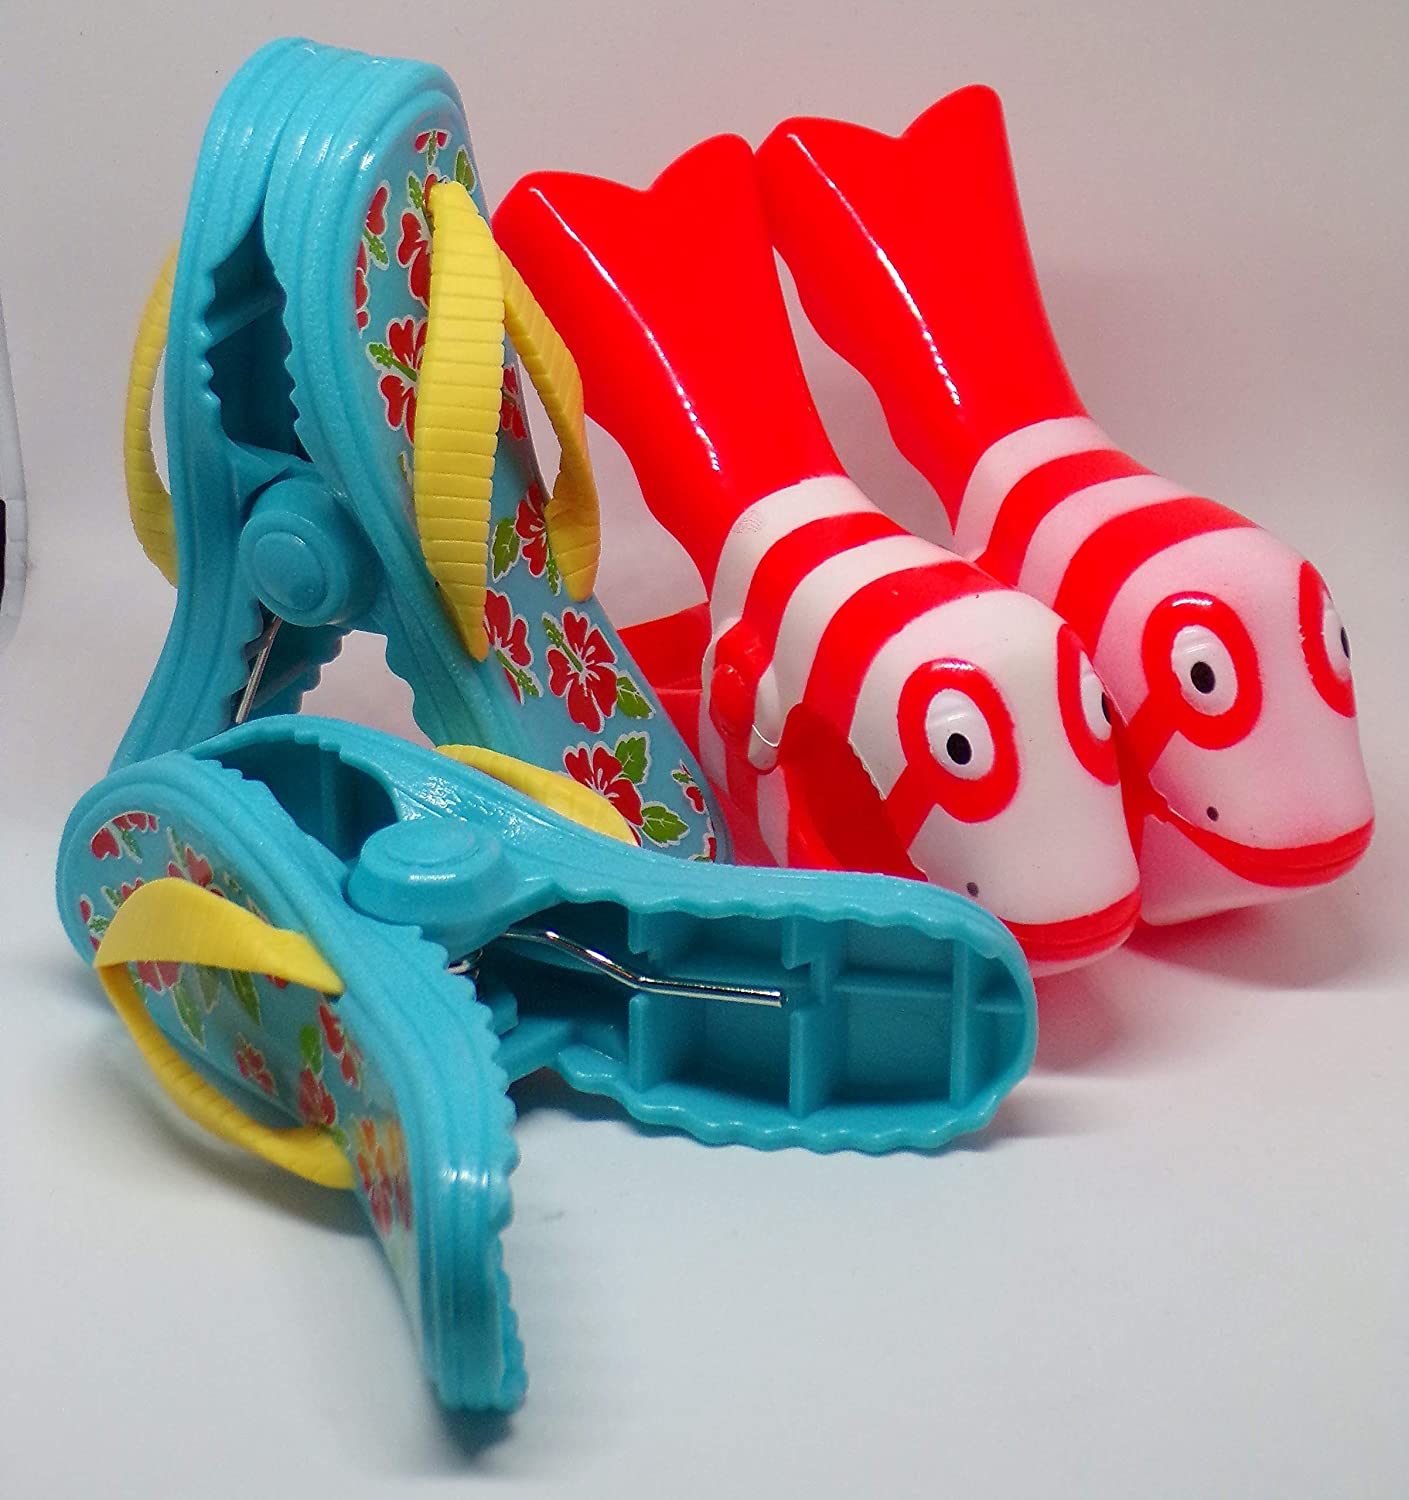 Beach Towel Clips Boca style - 2 pairs Flip flops and clown fish .